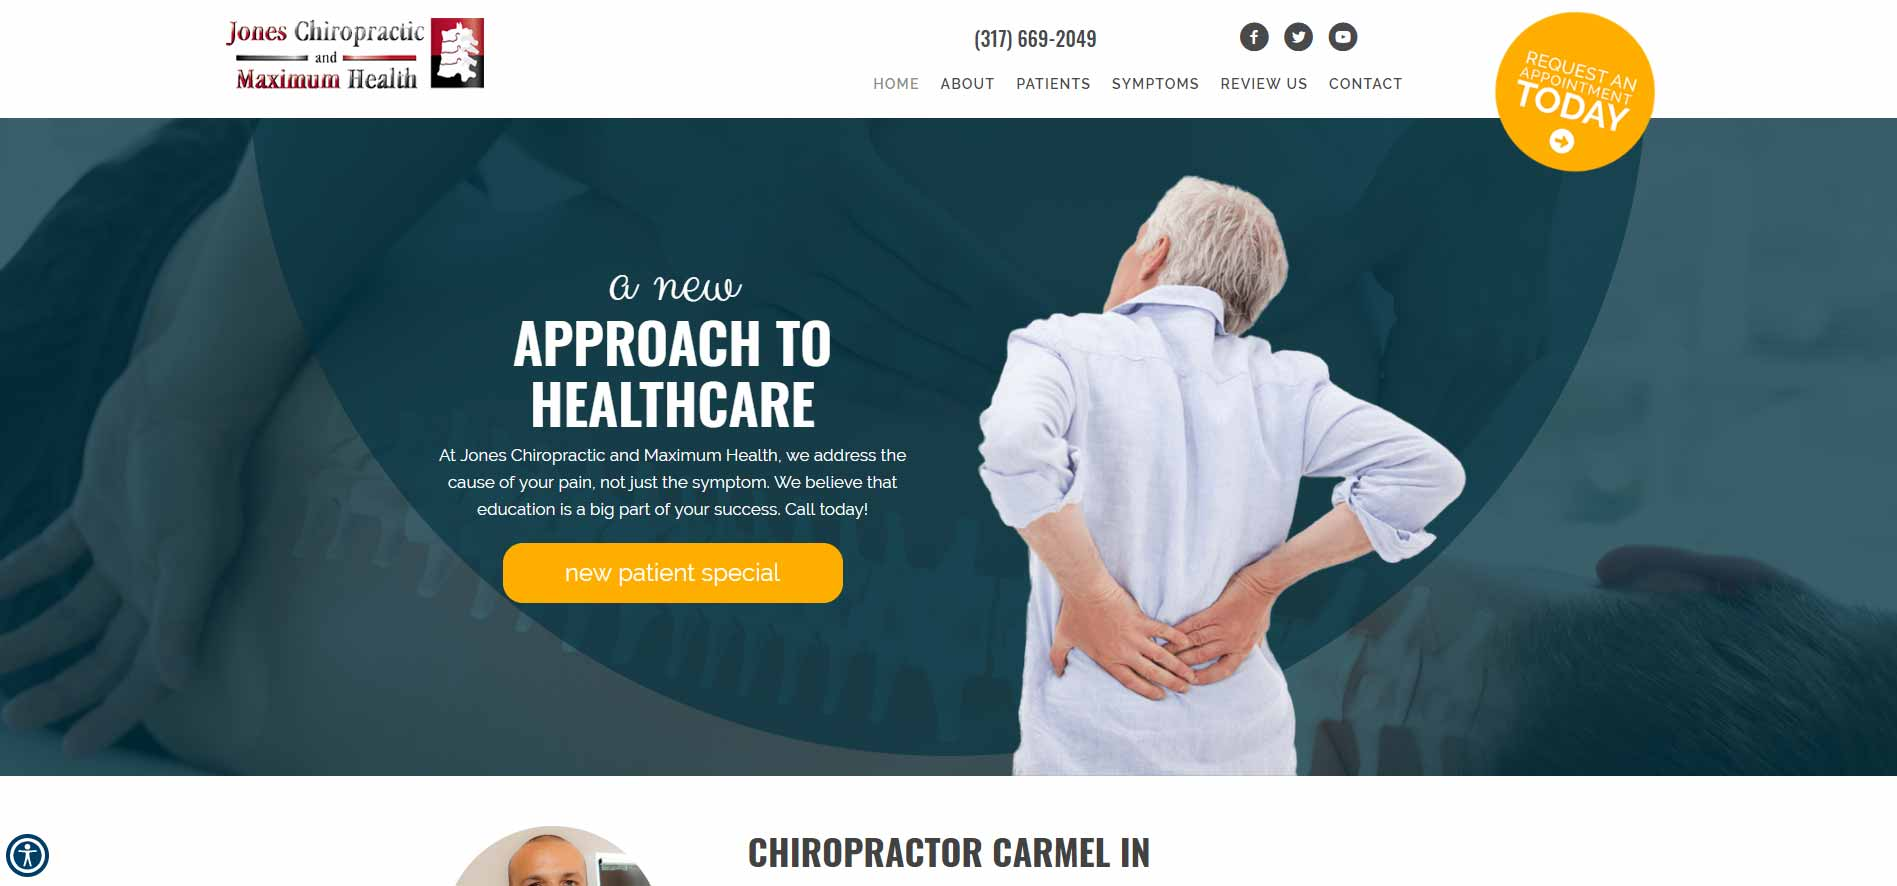 Chiropractor Carmel IN Jones Chiropractic and Maximum Health